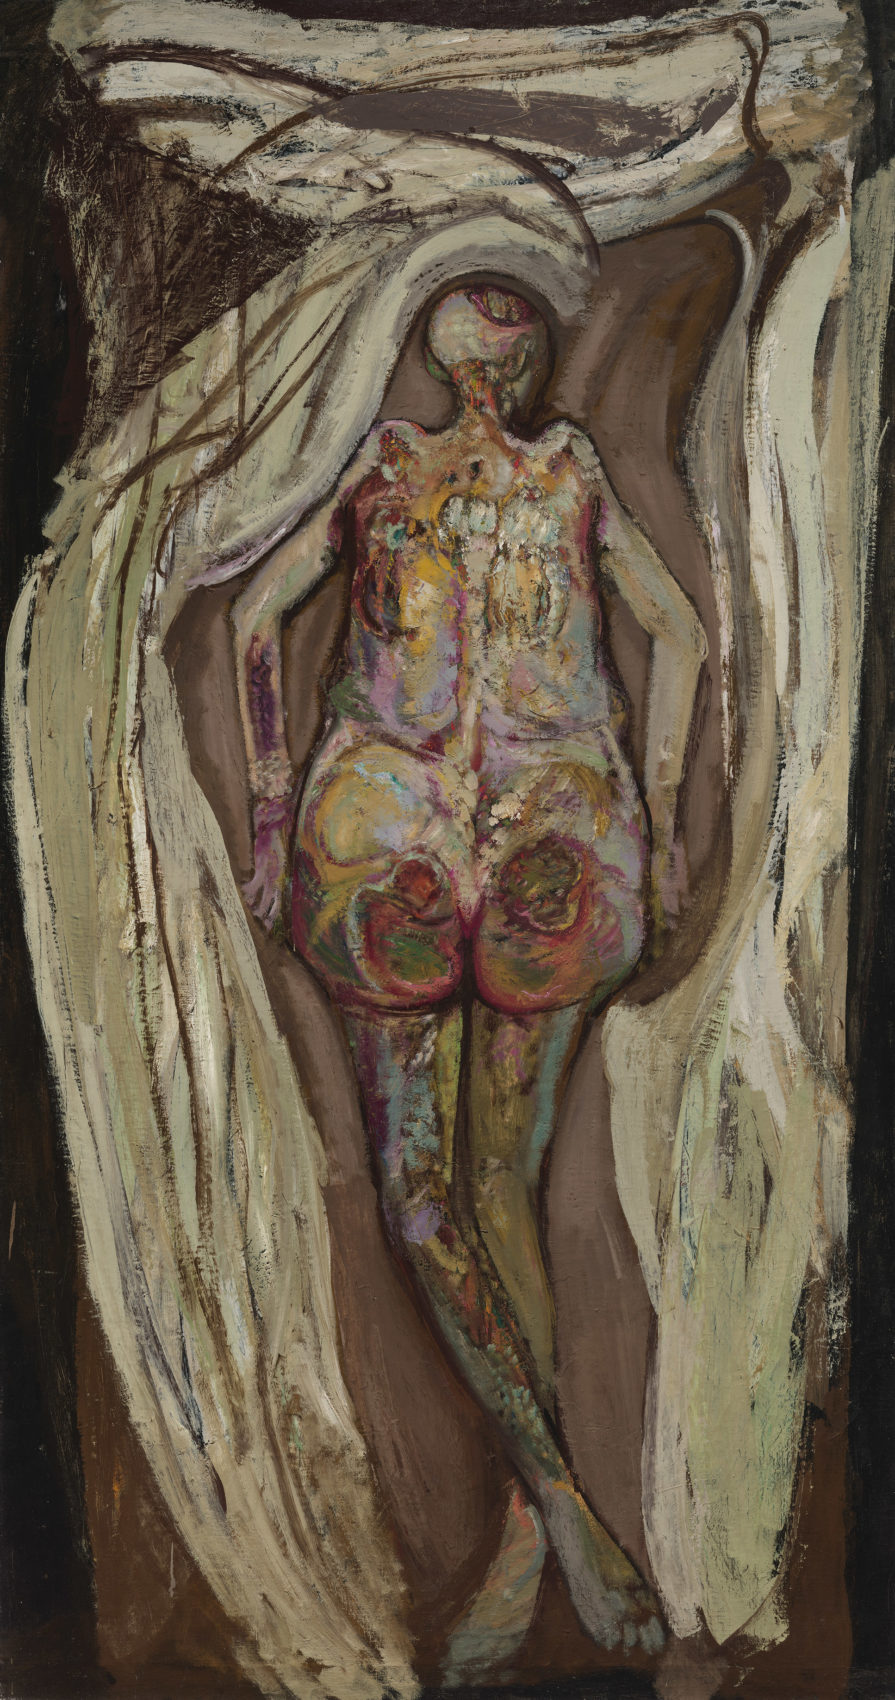 Body Painting Show >> The Horrifying Beauty Of Hyman Bloom's Paintings | The ARTery